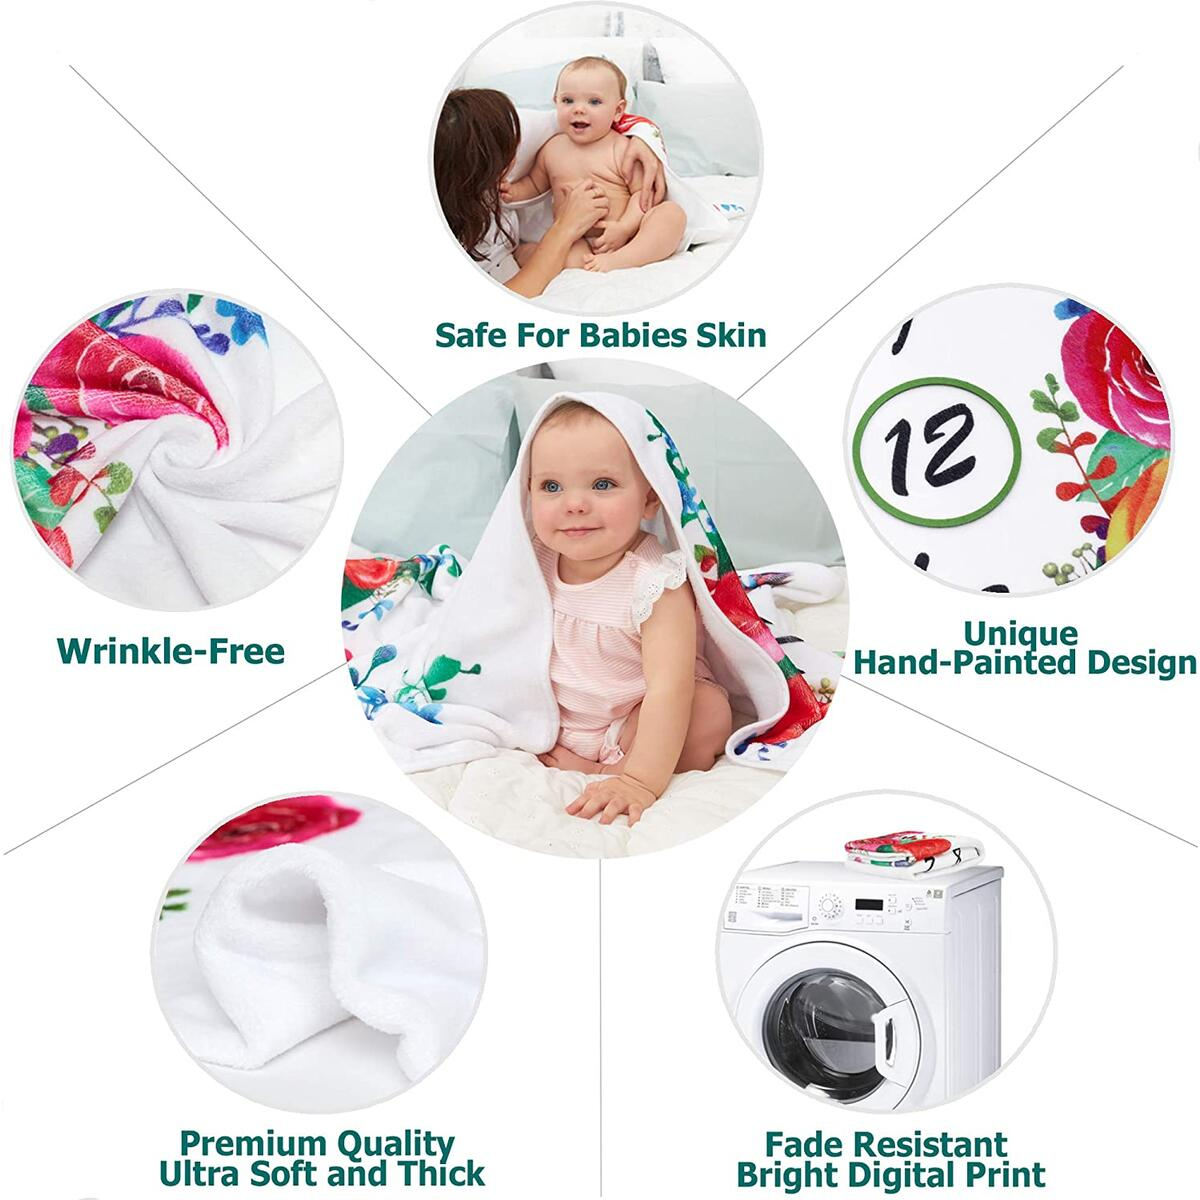 Baby Monthly Milestone Blanket Girl – Baby Age Month by Month Blanket – Premium Quality - Floral Baby Photo Memory Blankets for Newborns – Growth Chart Gift Blanket for Baby Pictures with Headband